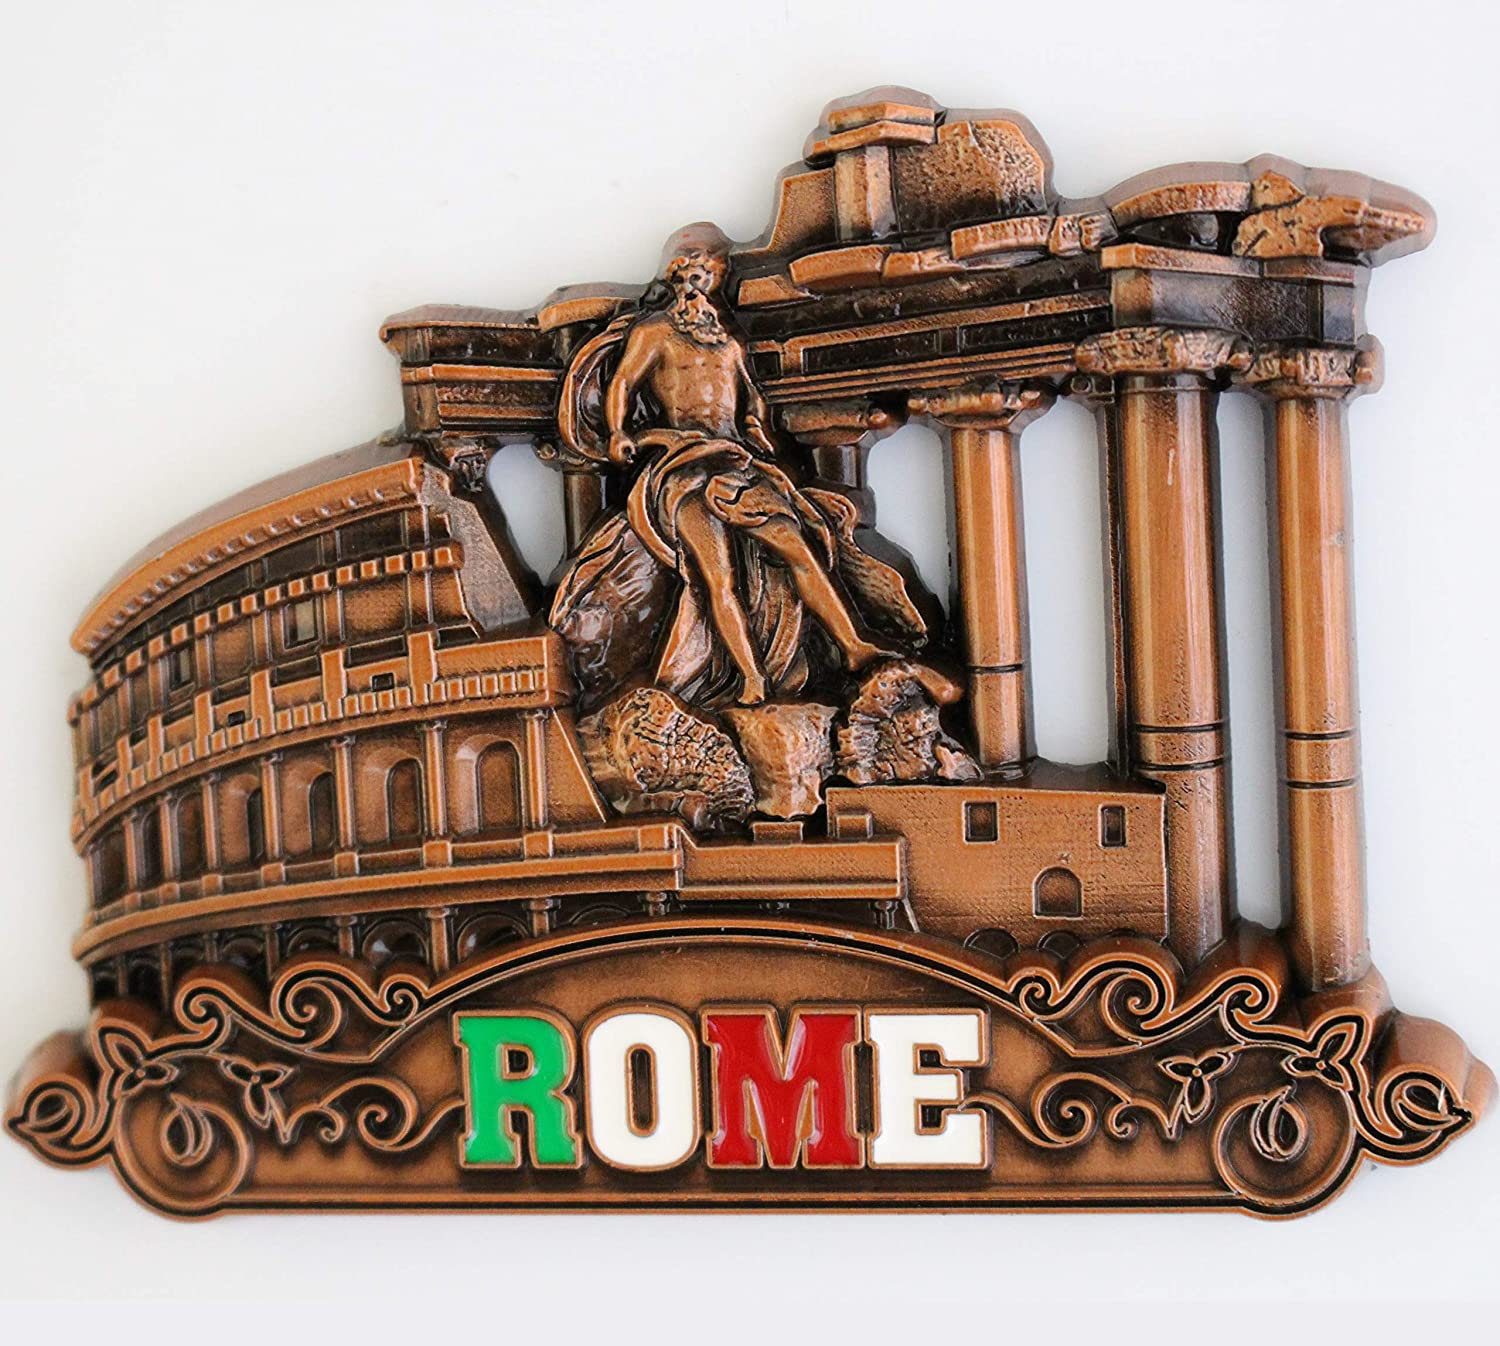 Italy Rome Metal Fridge Magnet Unique Design Home Kitchen Decorative Travel Holiday Souvenir Gift, Stick Up Your Lists Photos on Refrigerator